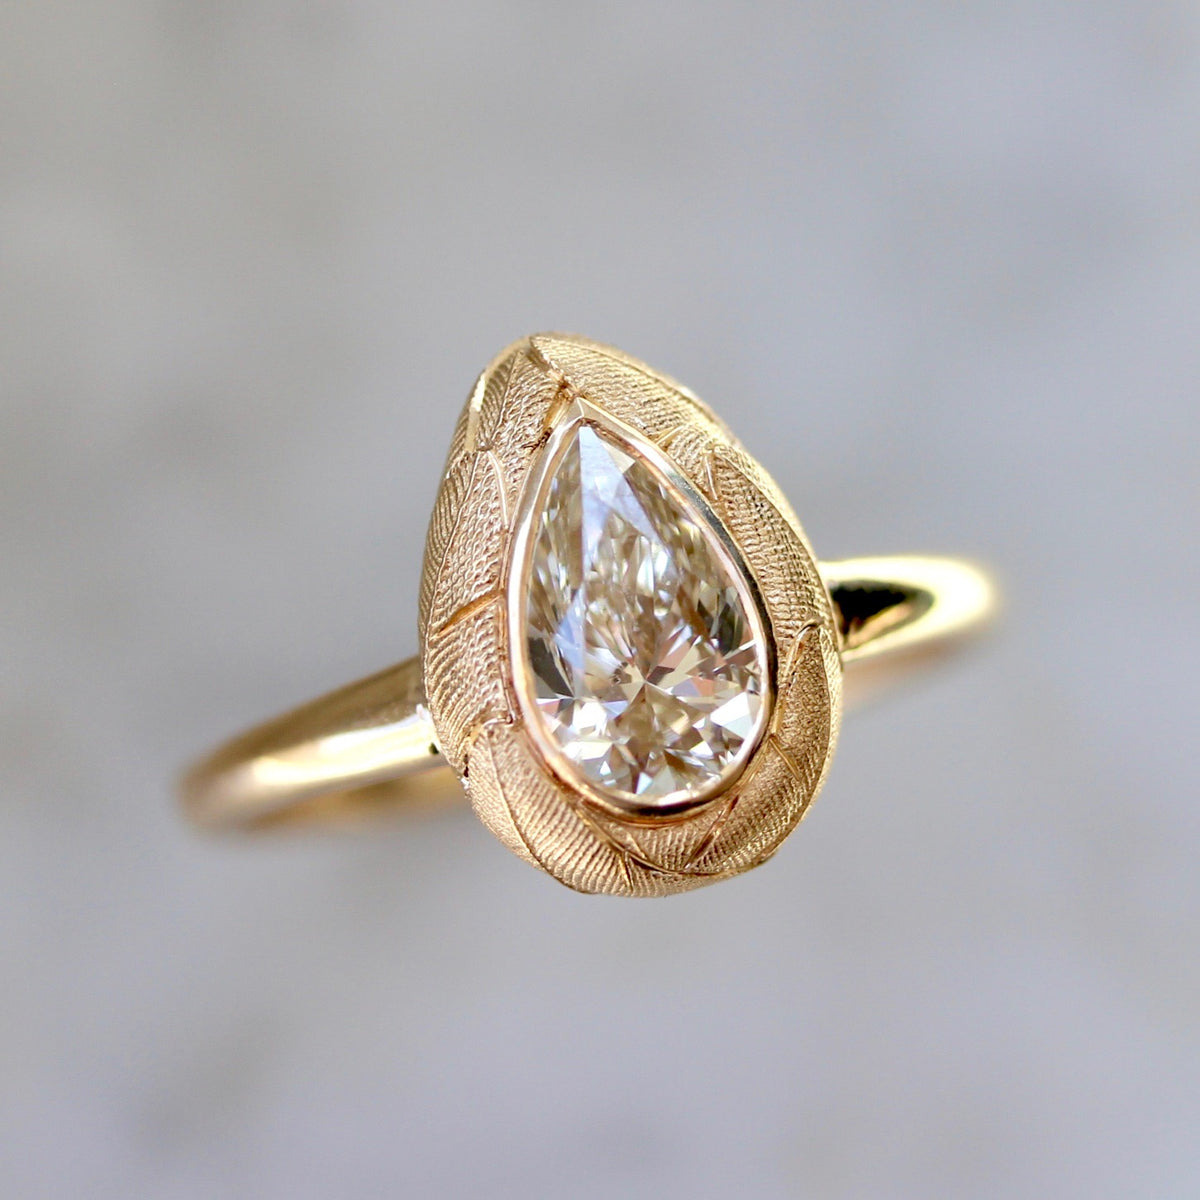 Flickering Fire Champagne Pear Cut Diamond